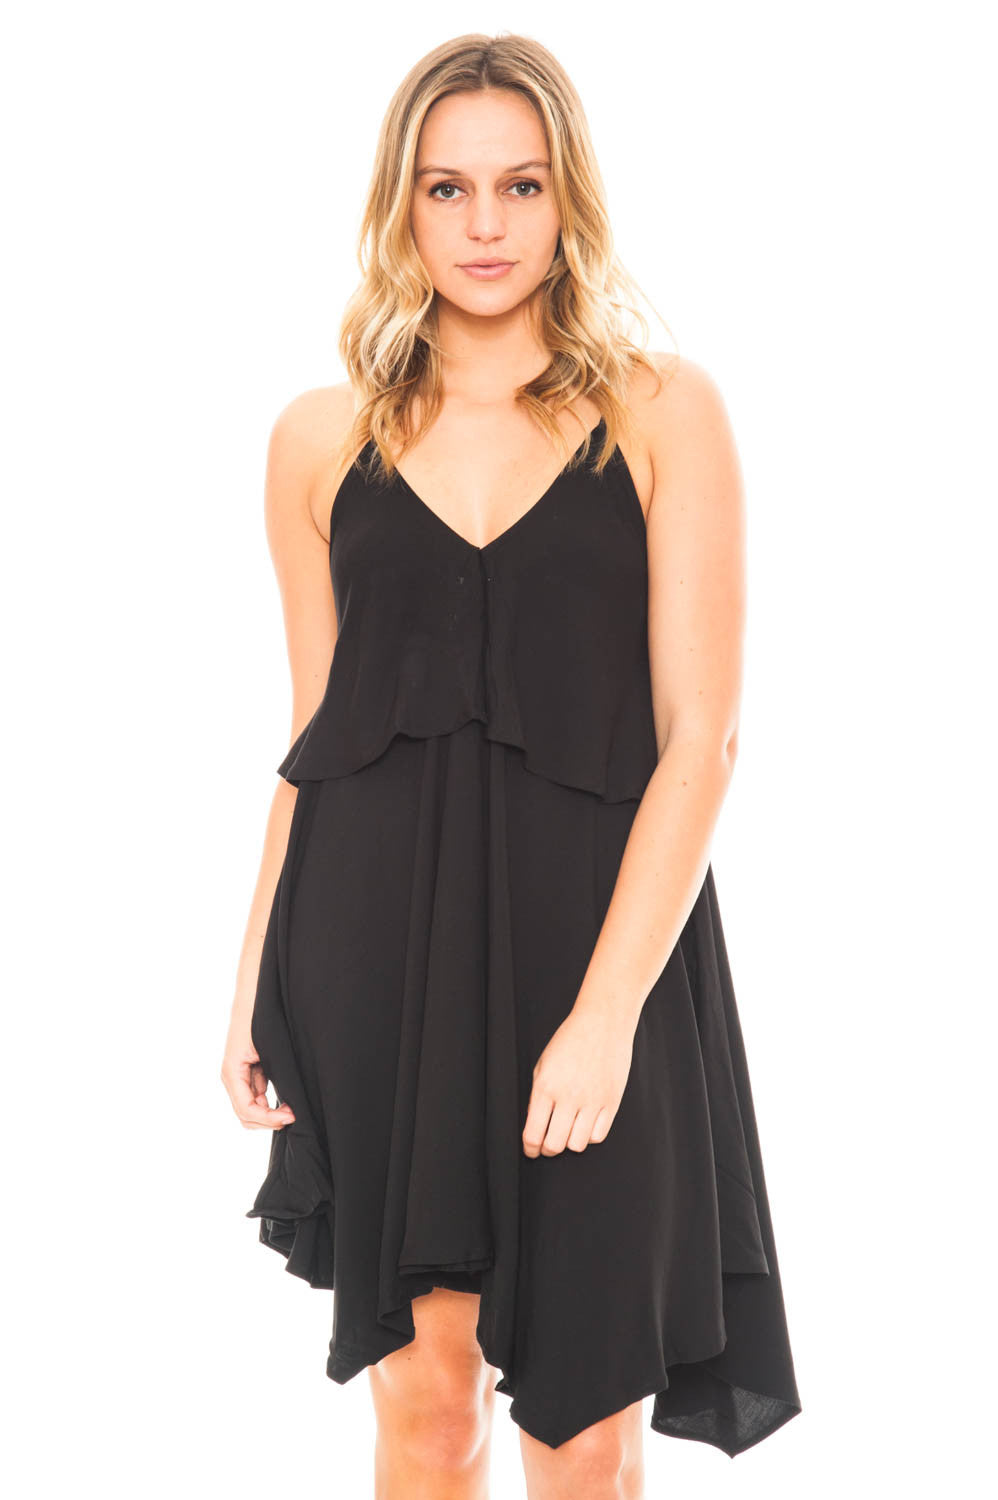 Dress - Auda by BB Dakota Flowy Dress